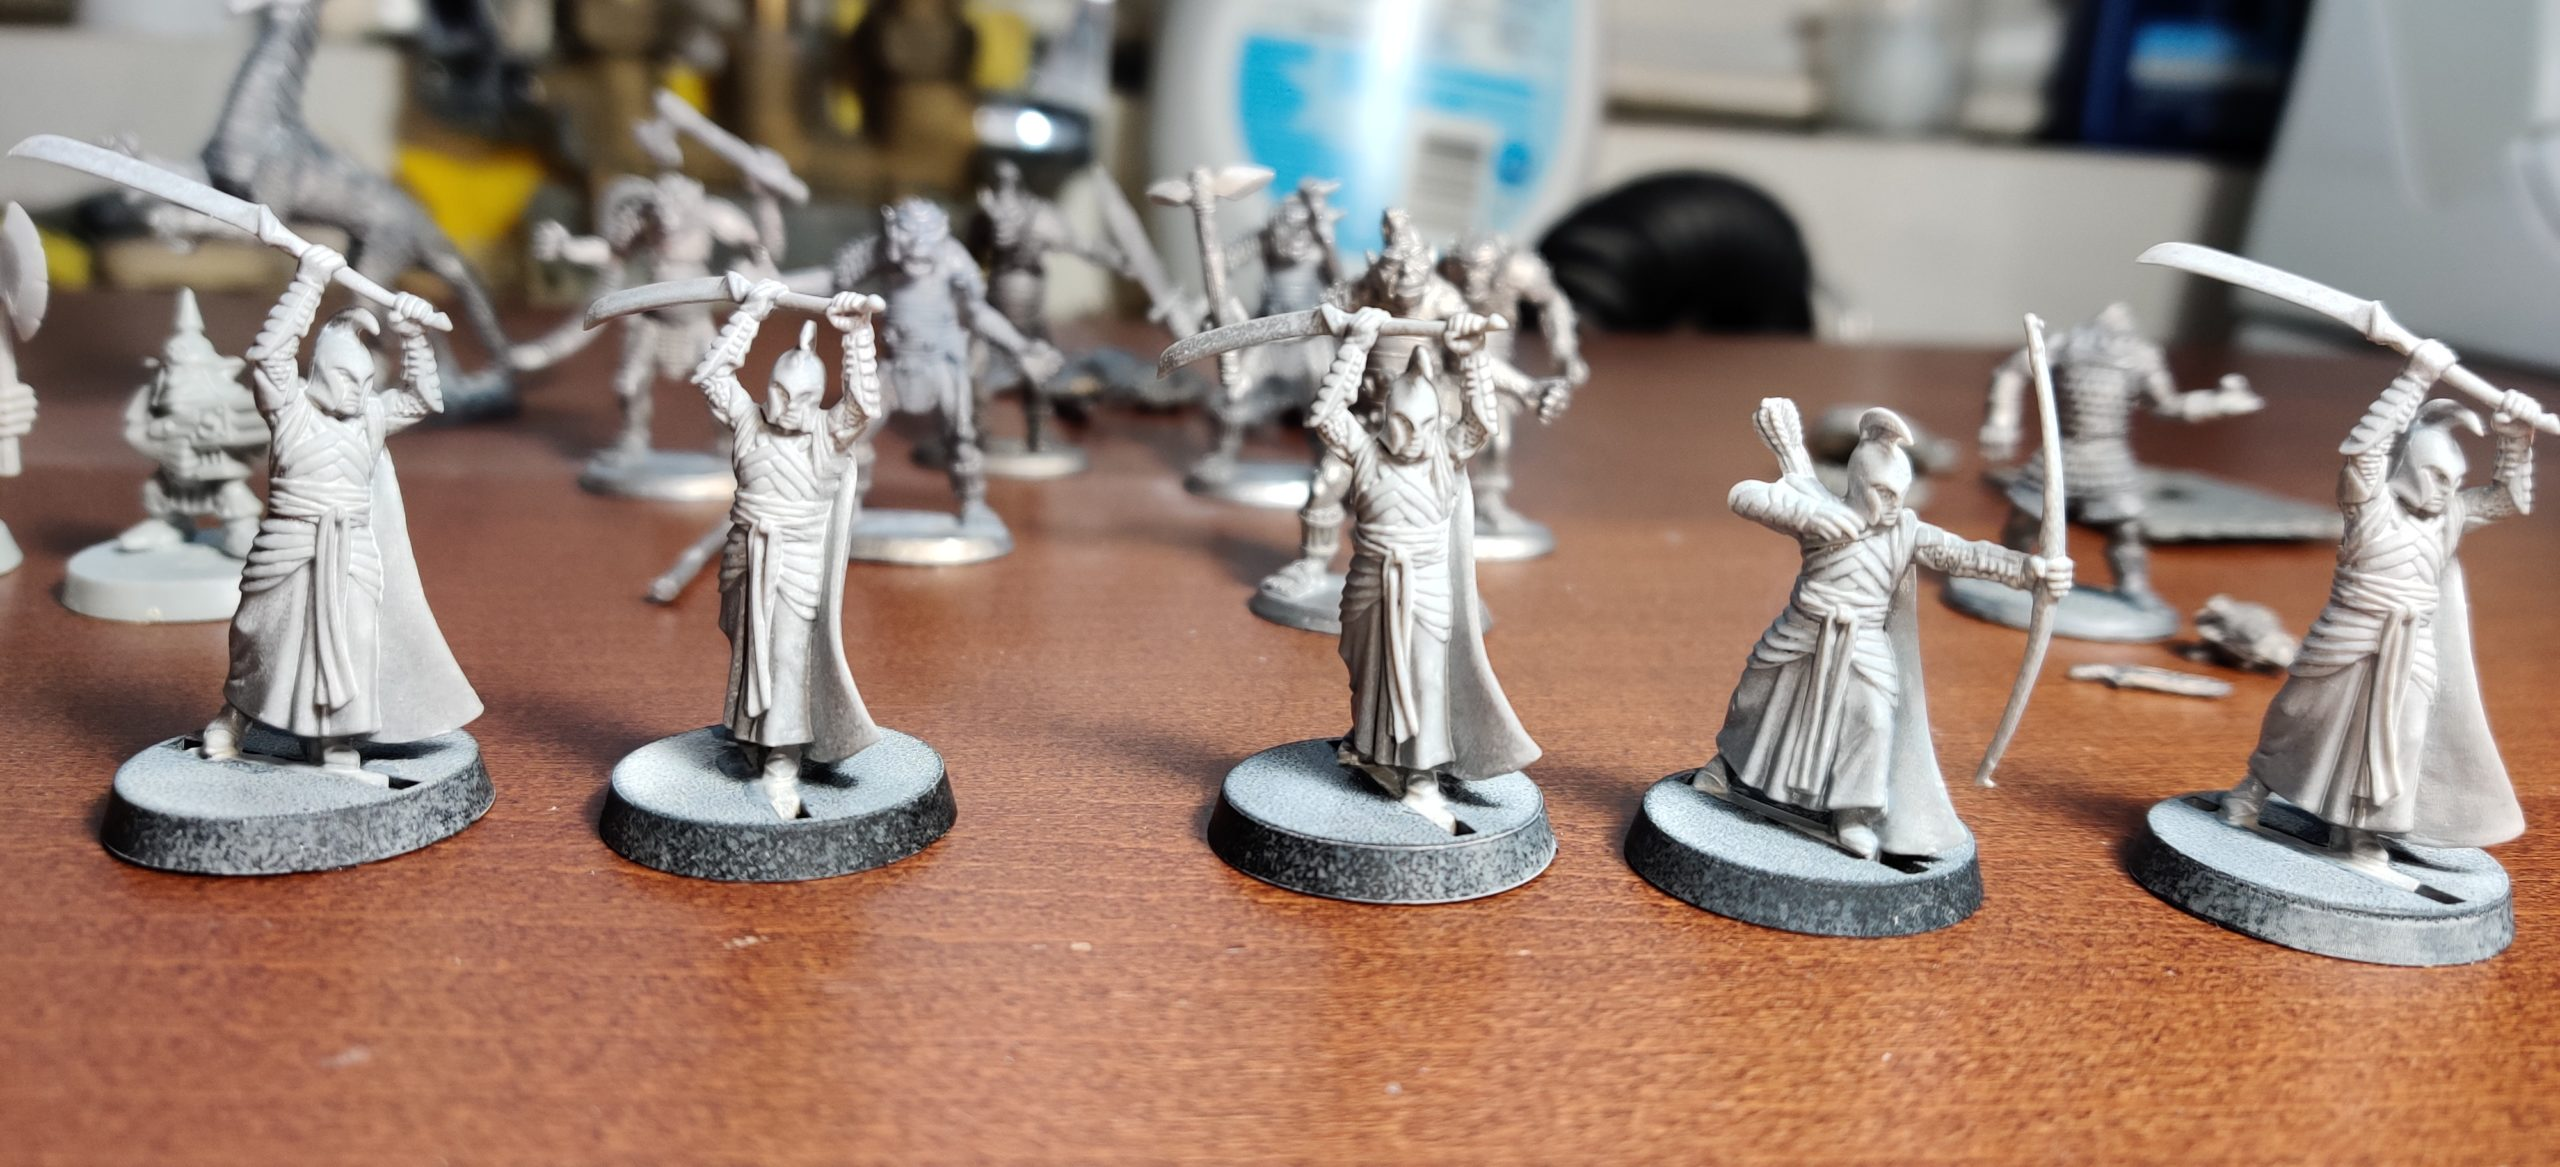 LotR High Elves color-test models after being stripped of paint.